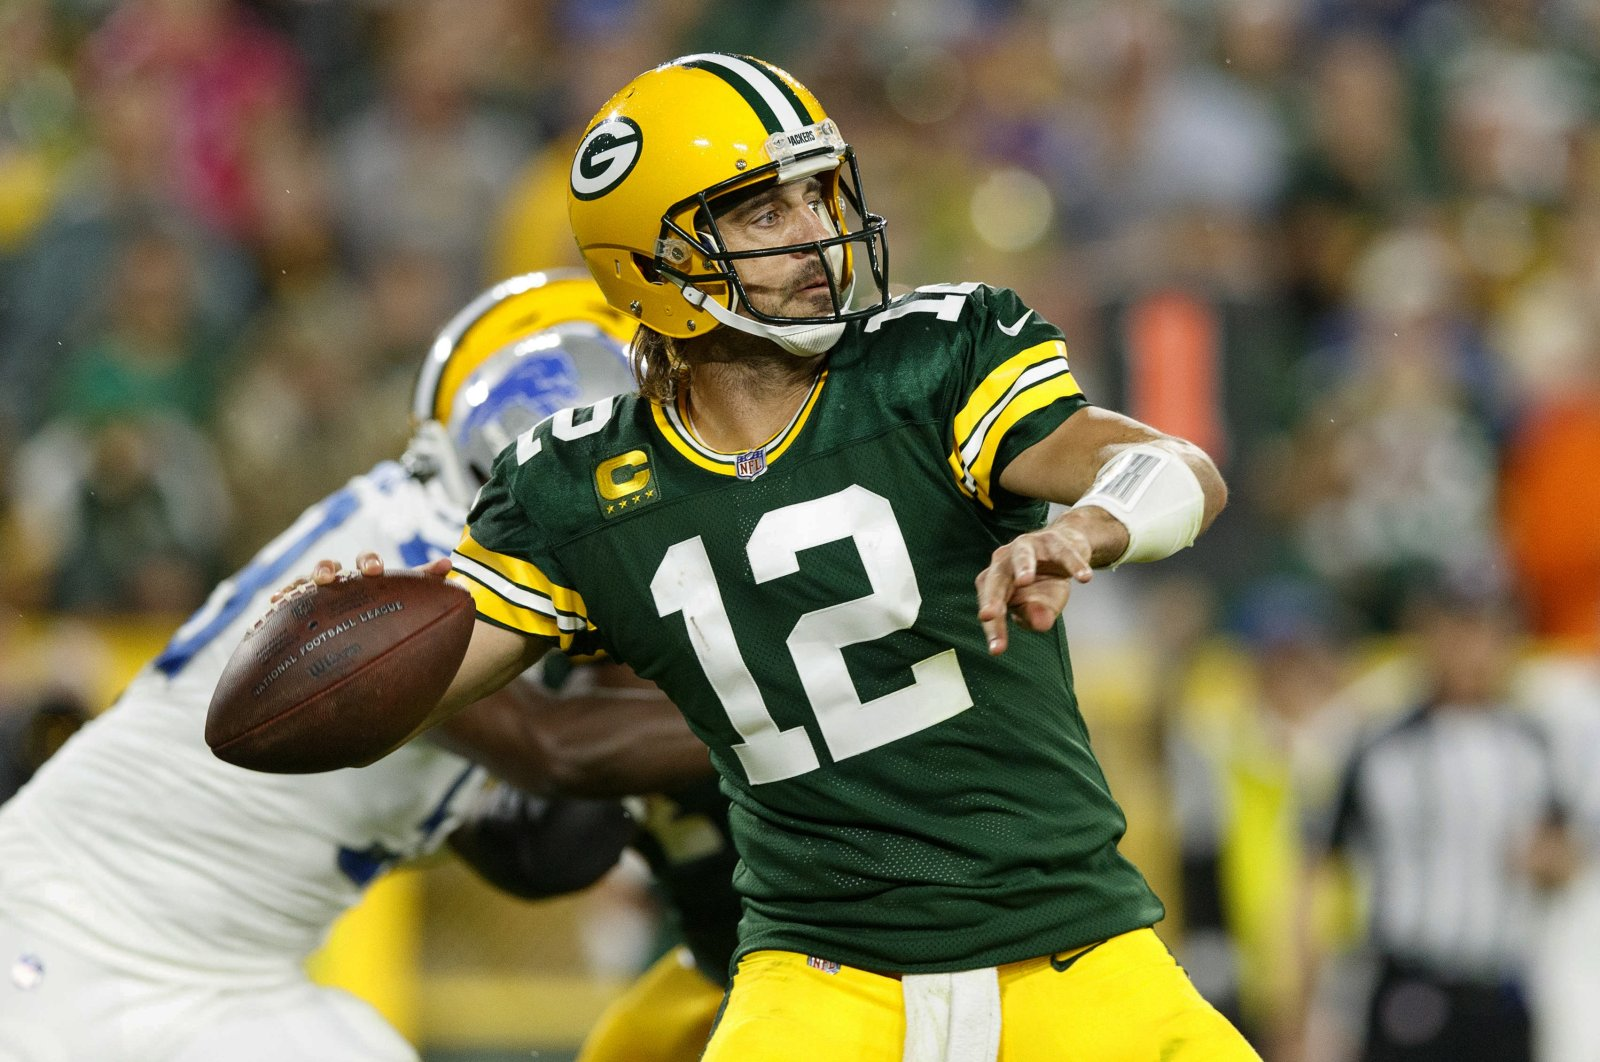 Green Bay Packers quarterback Aaron Rodgers (12) throws a pass against the Detroit Lions during the third quarter at Lambeau Field, Green Bay, Wisconsin, U.S., Sept. 20, 2021. (Jeff Hanisch-USA TODAY Sports via REUTERS)